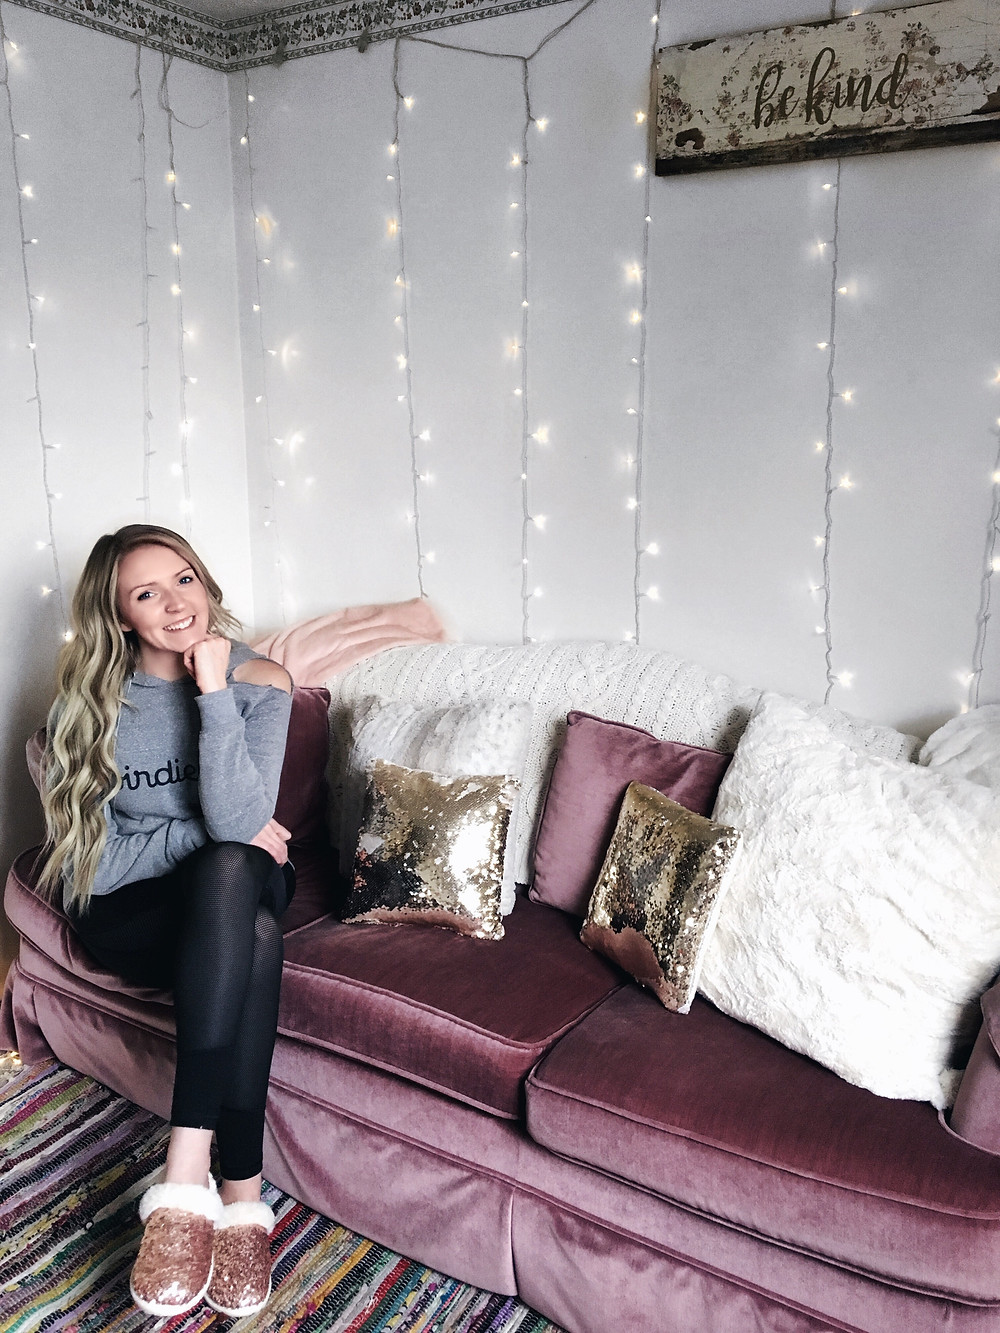 Babe Cave, Pink Couch, Sequin Pillows, Faux Fur, Be Kind, Twinkle Lights, Slippers, Target Slippers, Birdie Bee, Victorias Secret Sport, Handtied Hair Extensions, Hair Extensions,